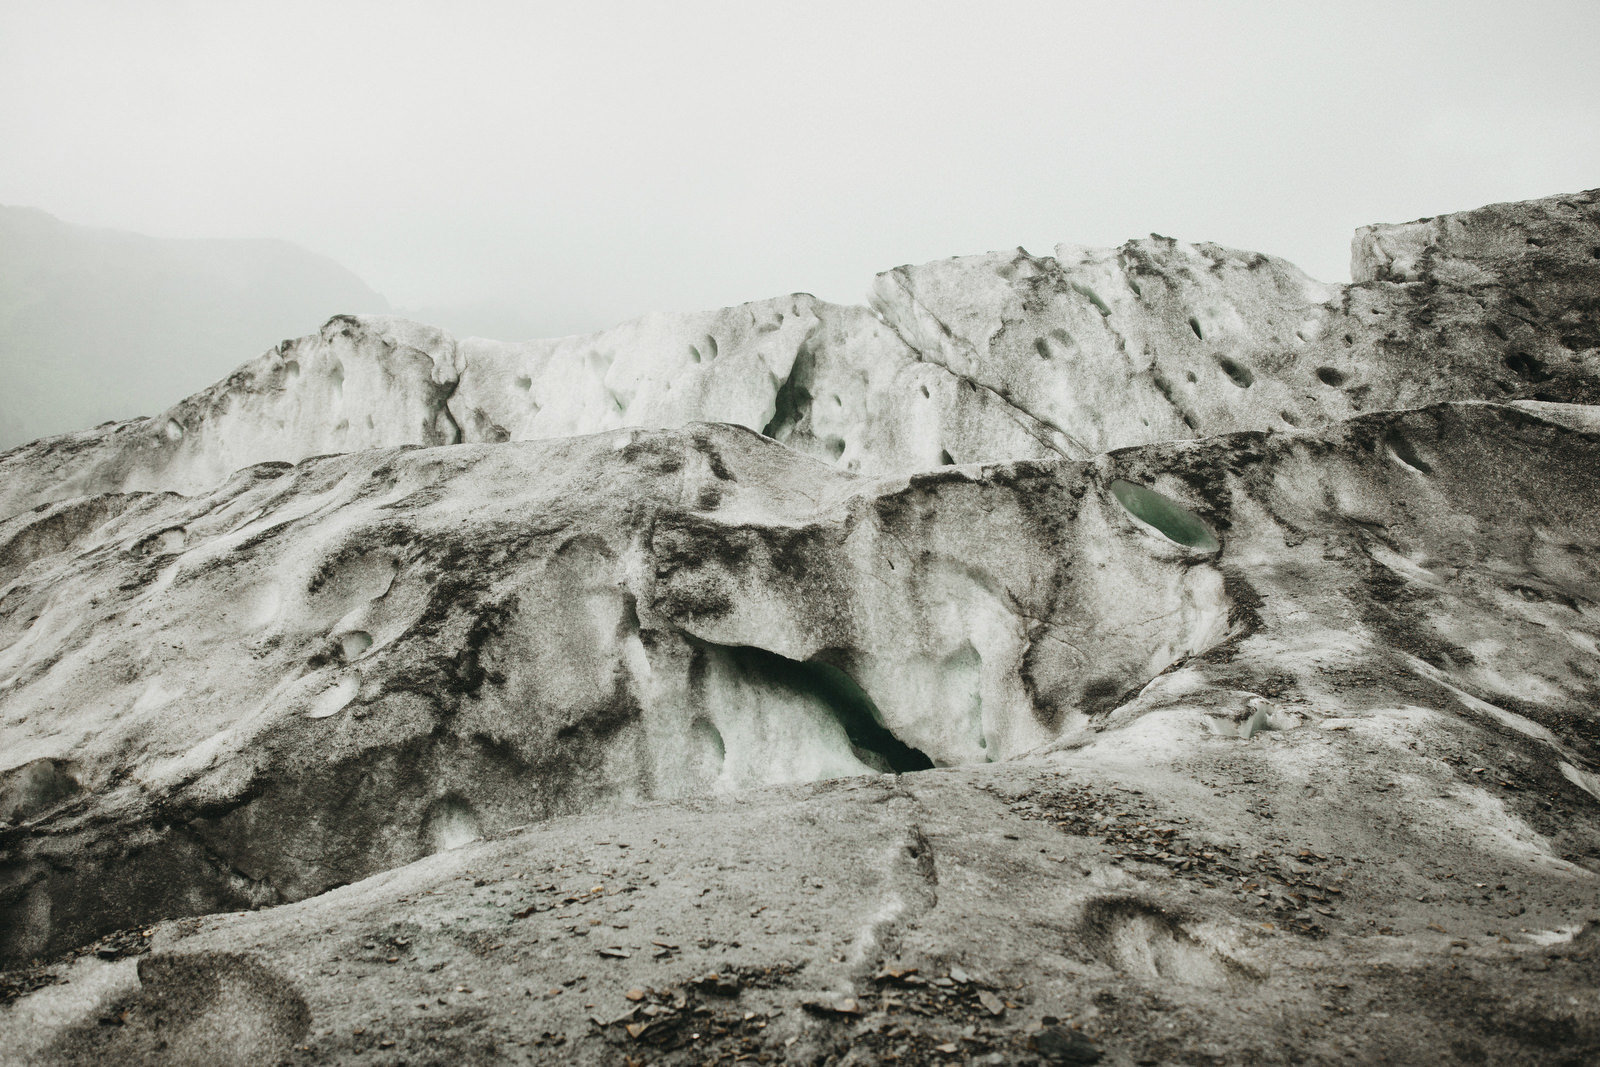 athena-and-camron-alaska-elopement-wedding-inspiration-india-earl-athena-grace-glacier-lagoon-wedding105